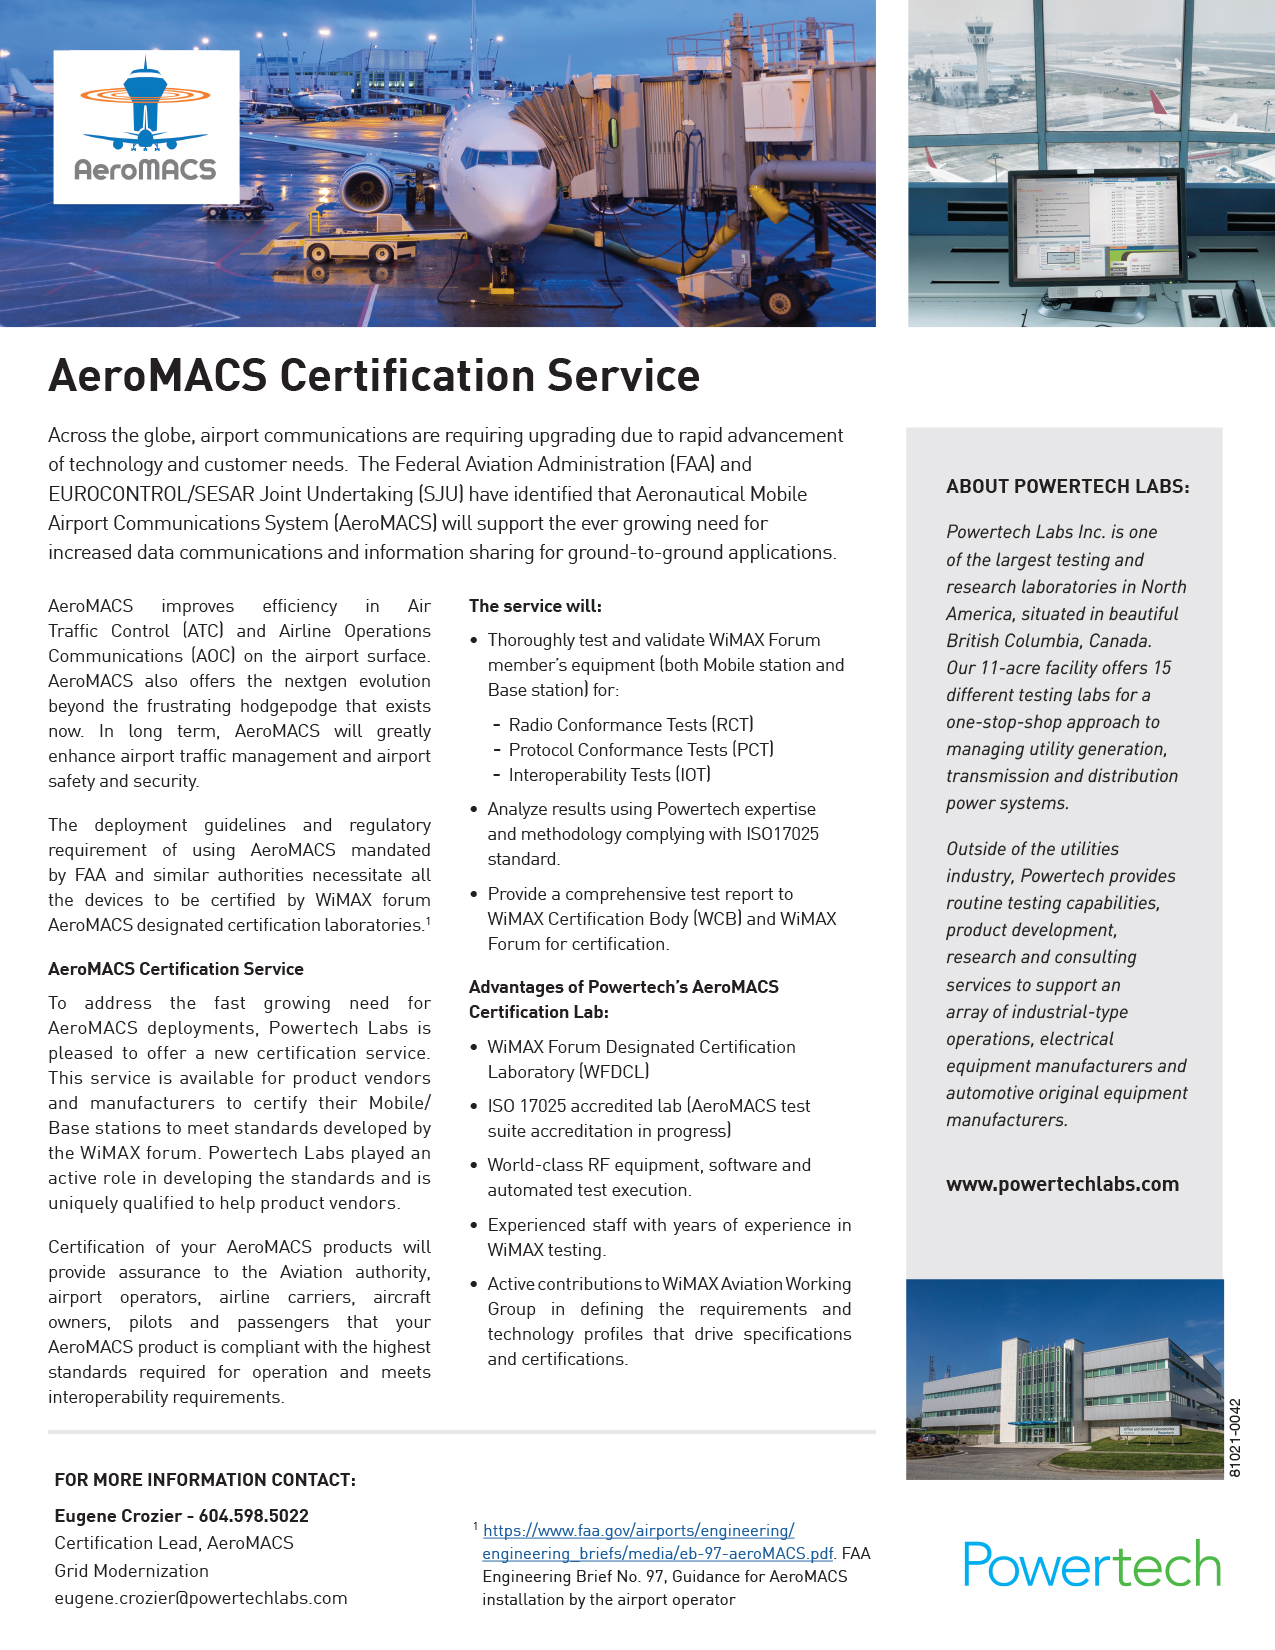 AeroMACS Certification Services PDF →